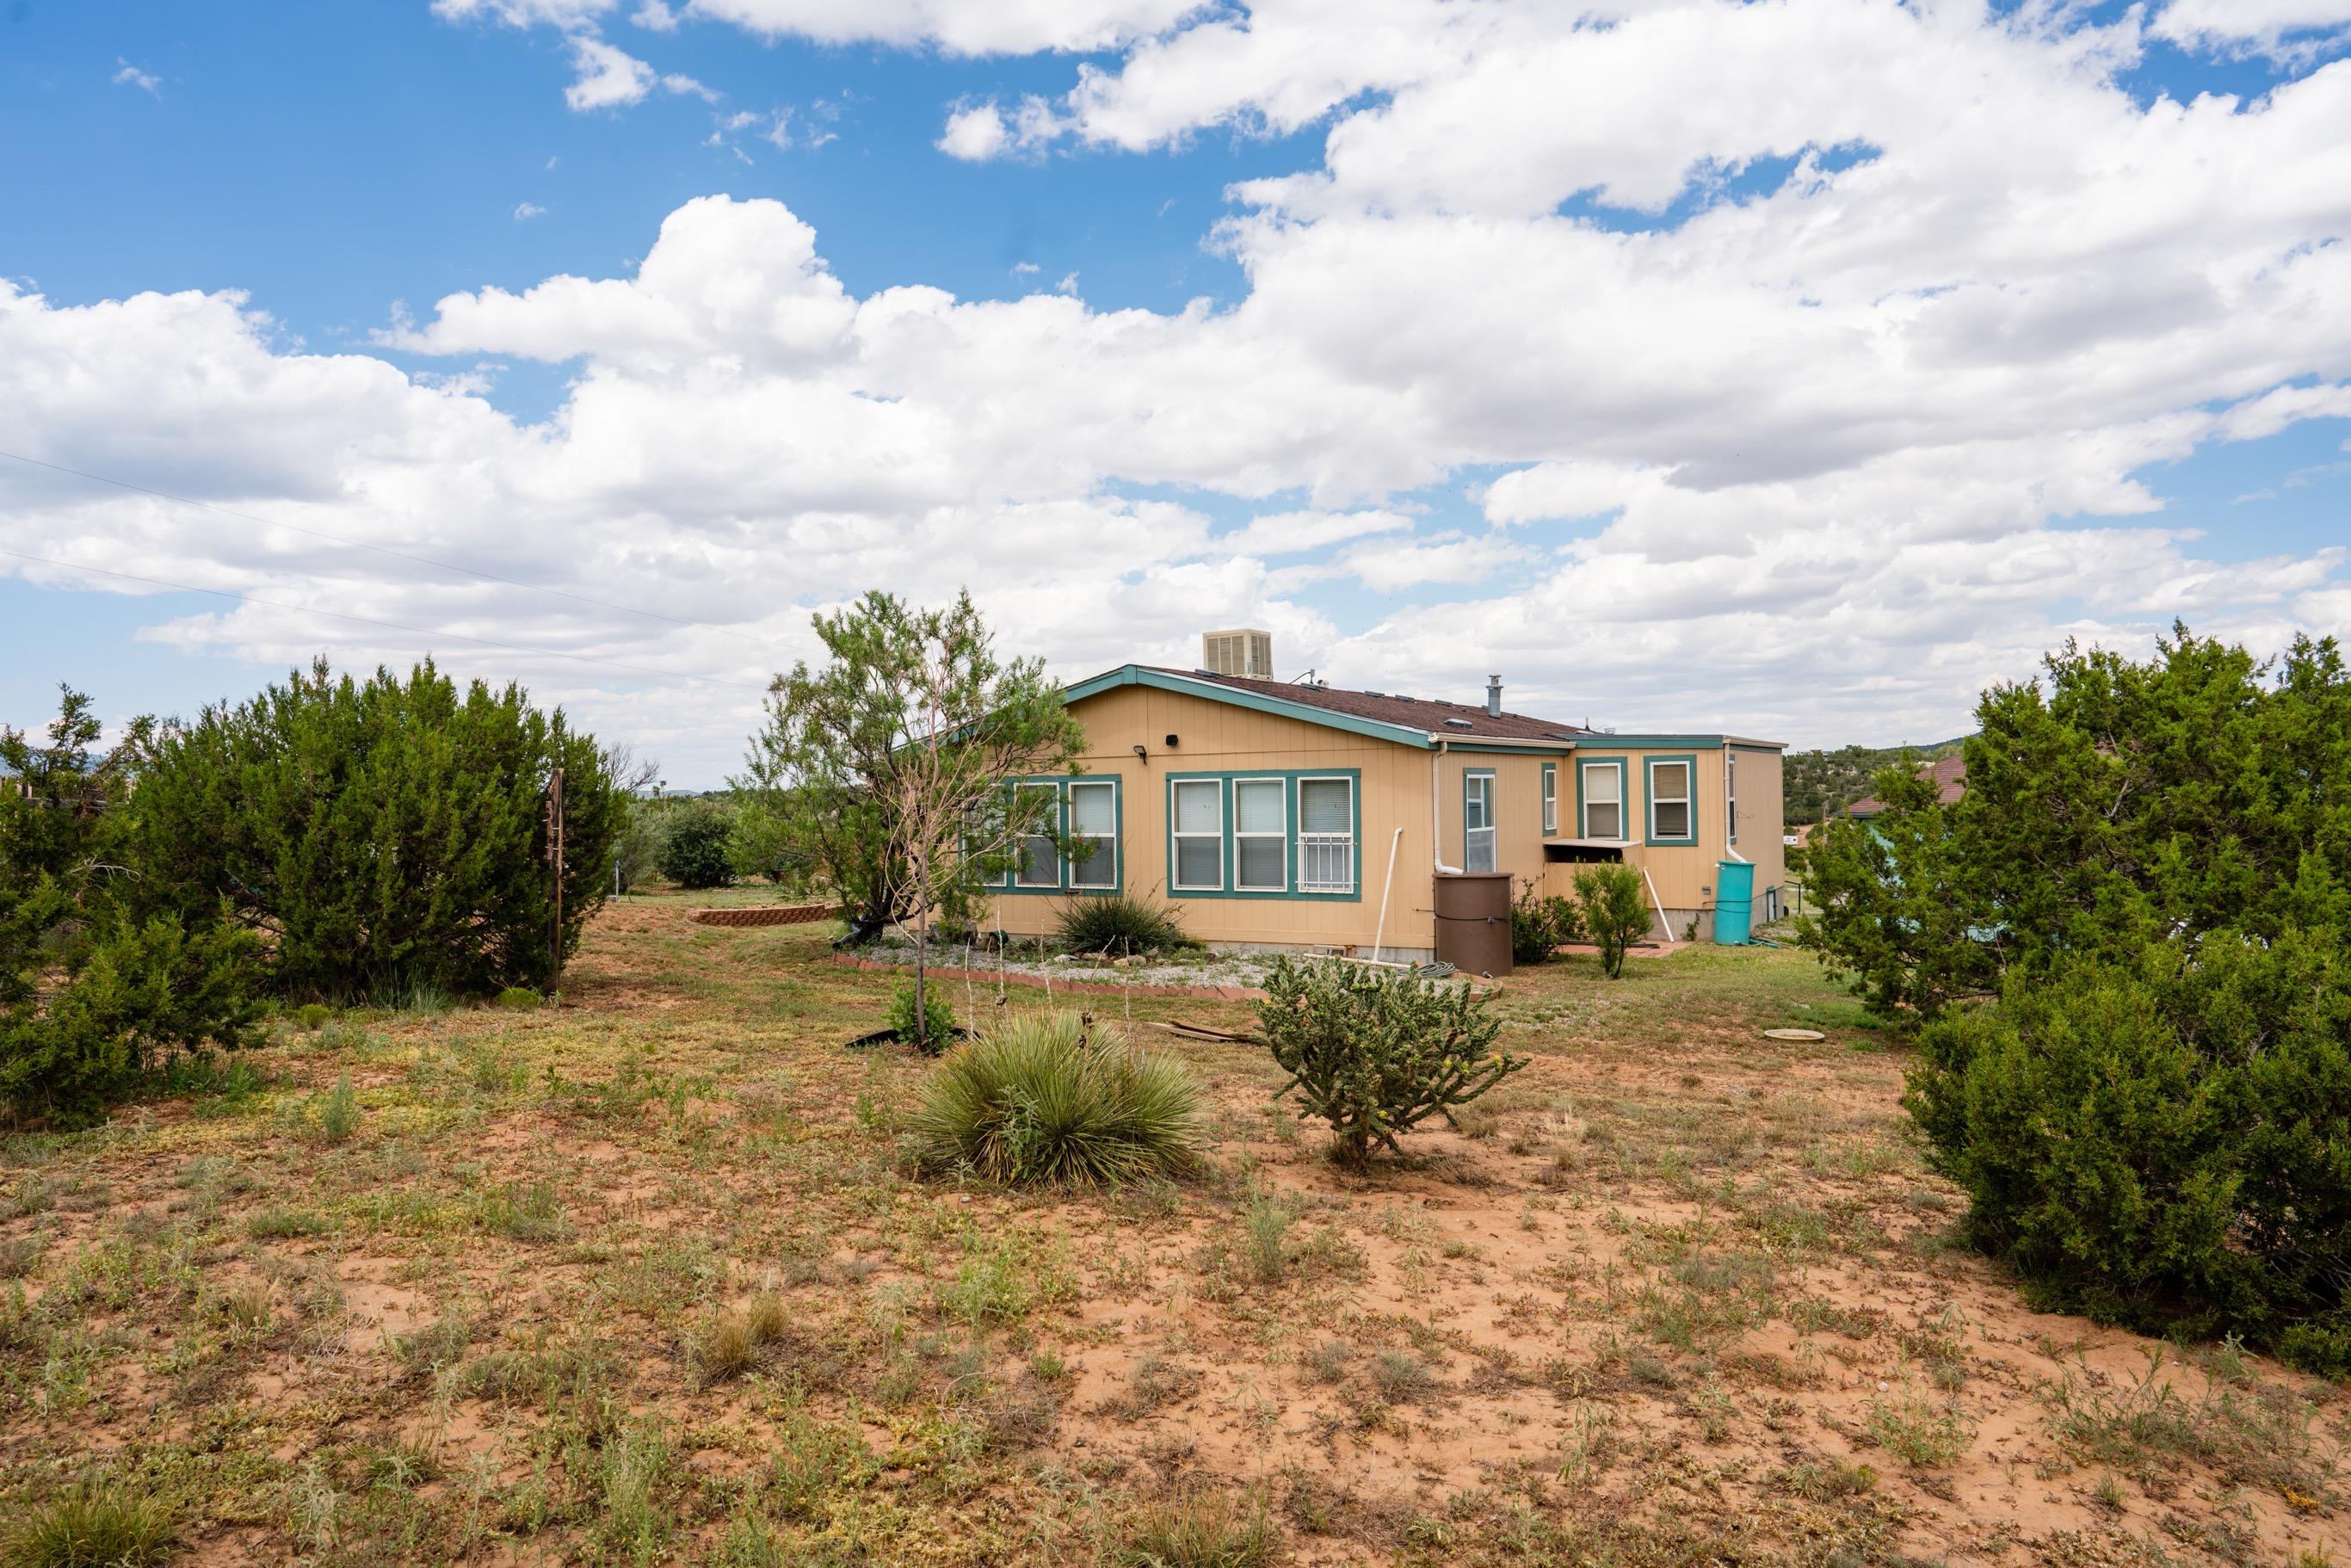 Come see this beautiful 2.25 acre property nestled in the heart of Sandia Crest. This well maintained manufactured home features a spacious living area and kitchen, two bedrooms, two full baths, a 24'x24' detached garage, and sits on a permanent foundation. Enjoy your morning coffee to incredible views of the Sandias. Schedule a showing today!